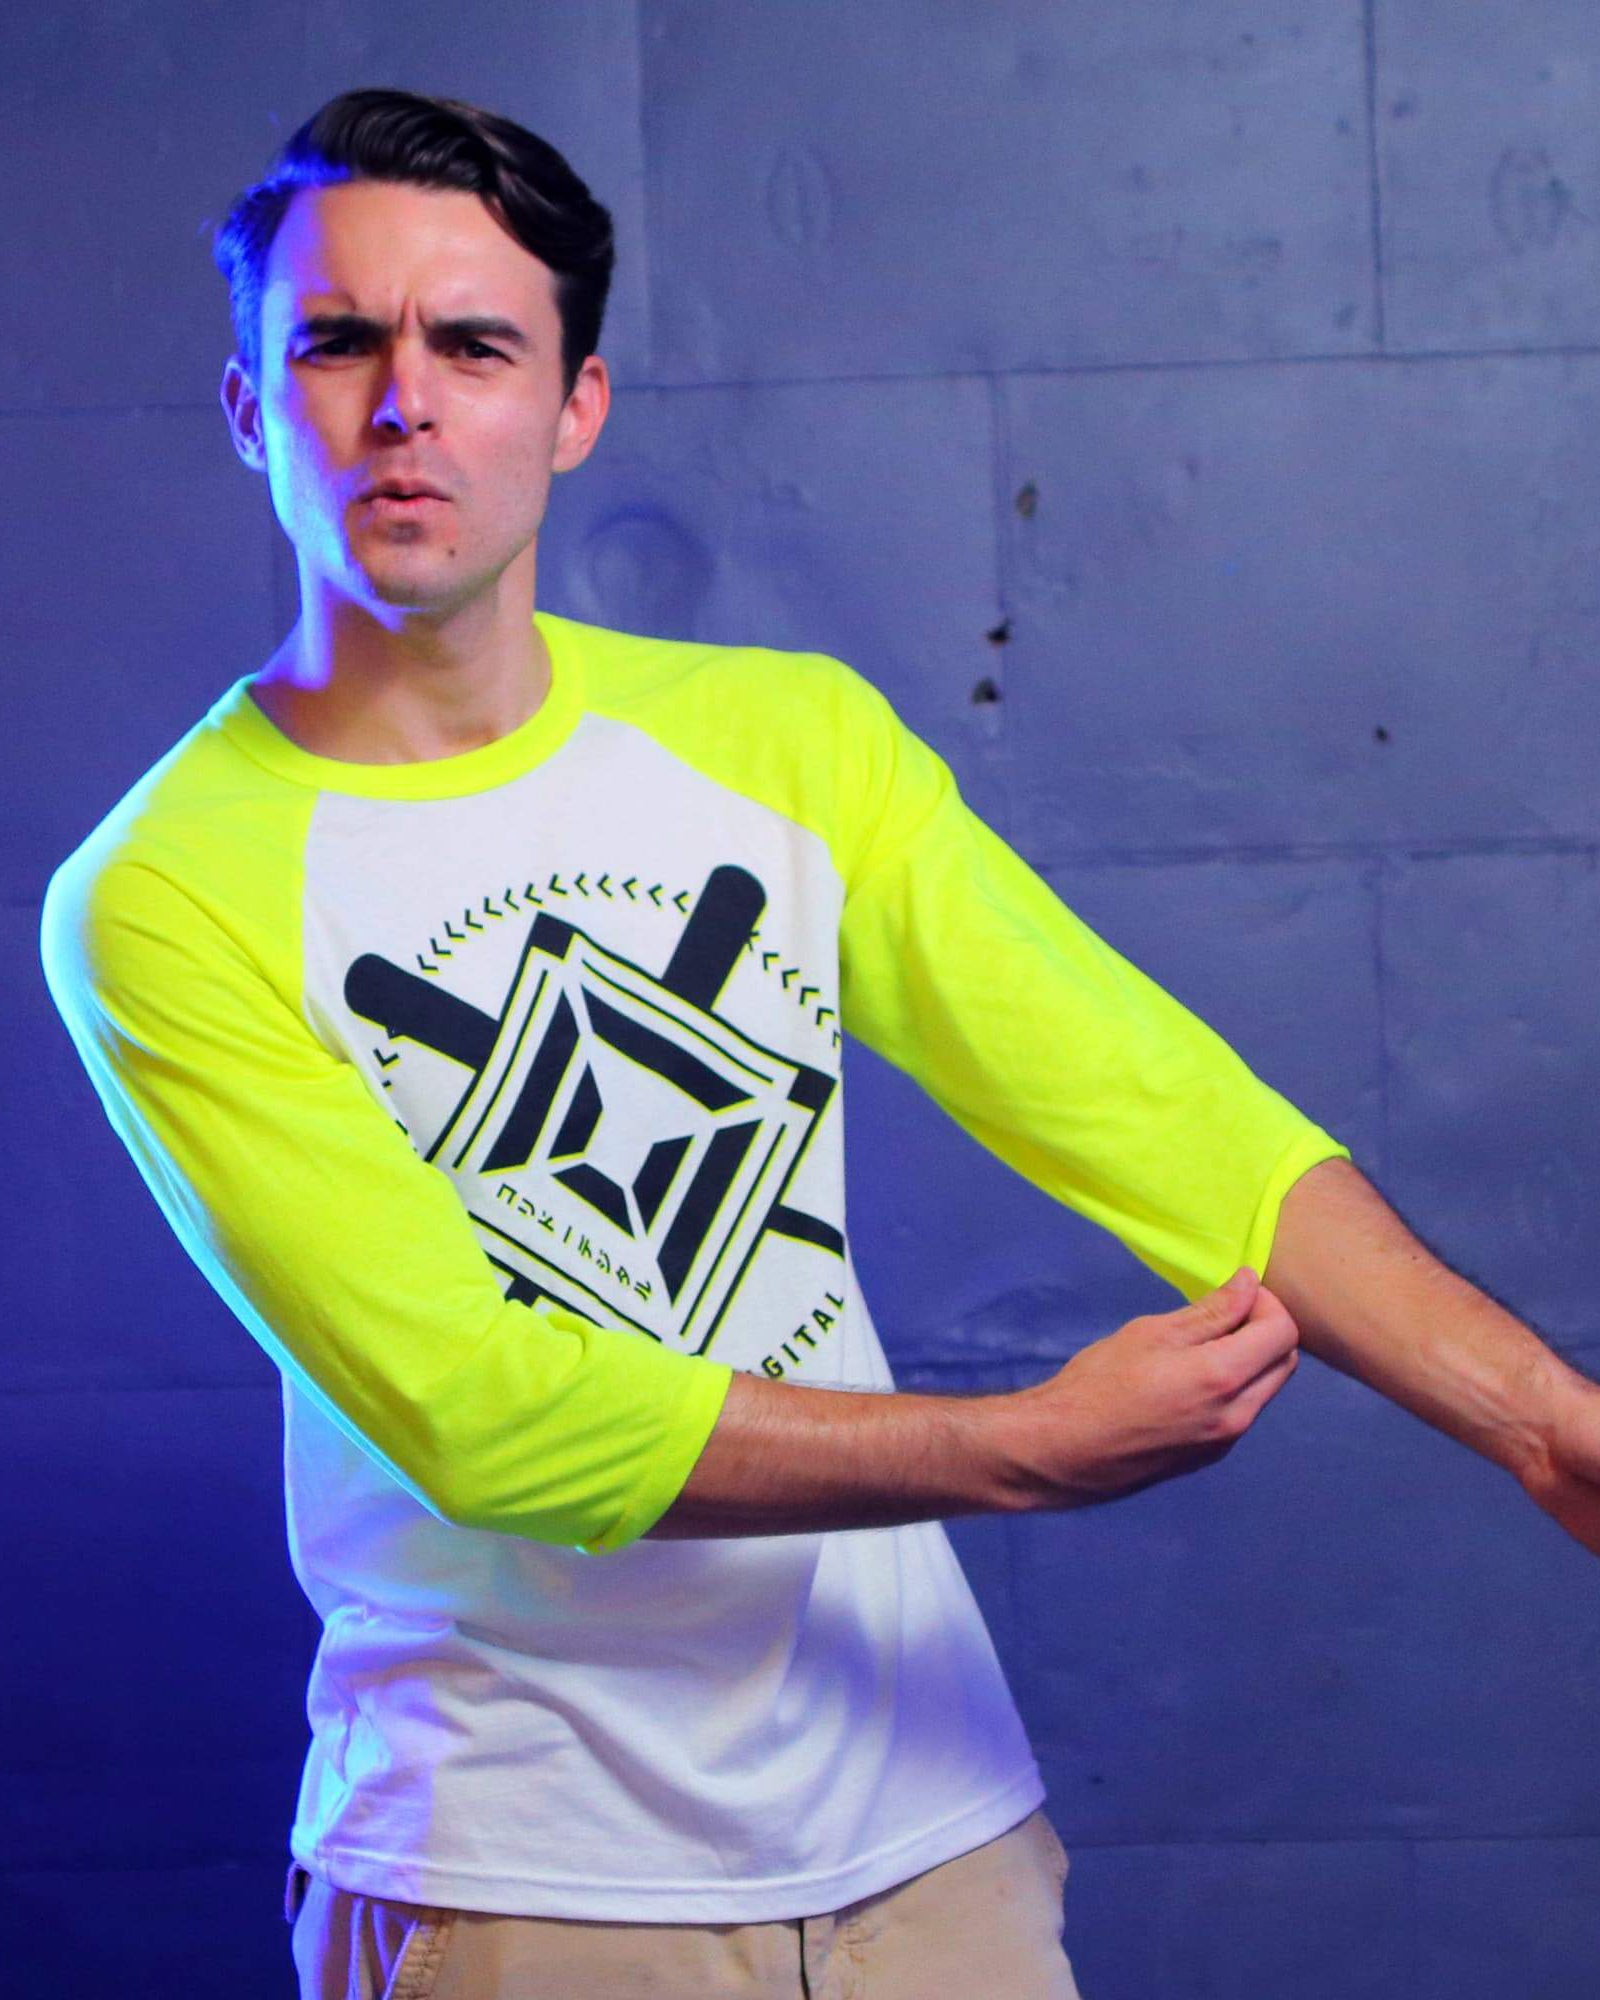 Corridor Baseball 3/4 Sleeve Raglan - White/Neon Yellow